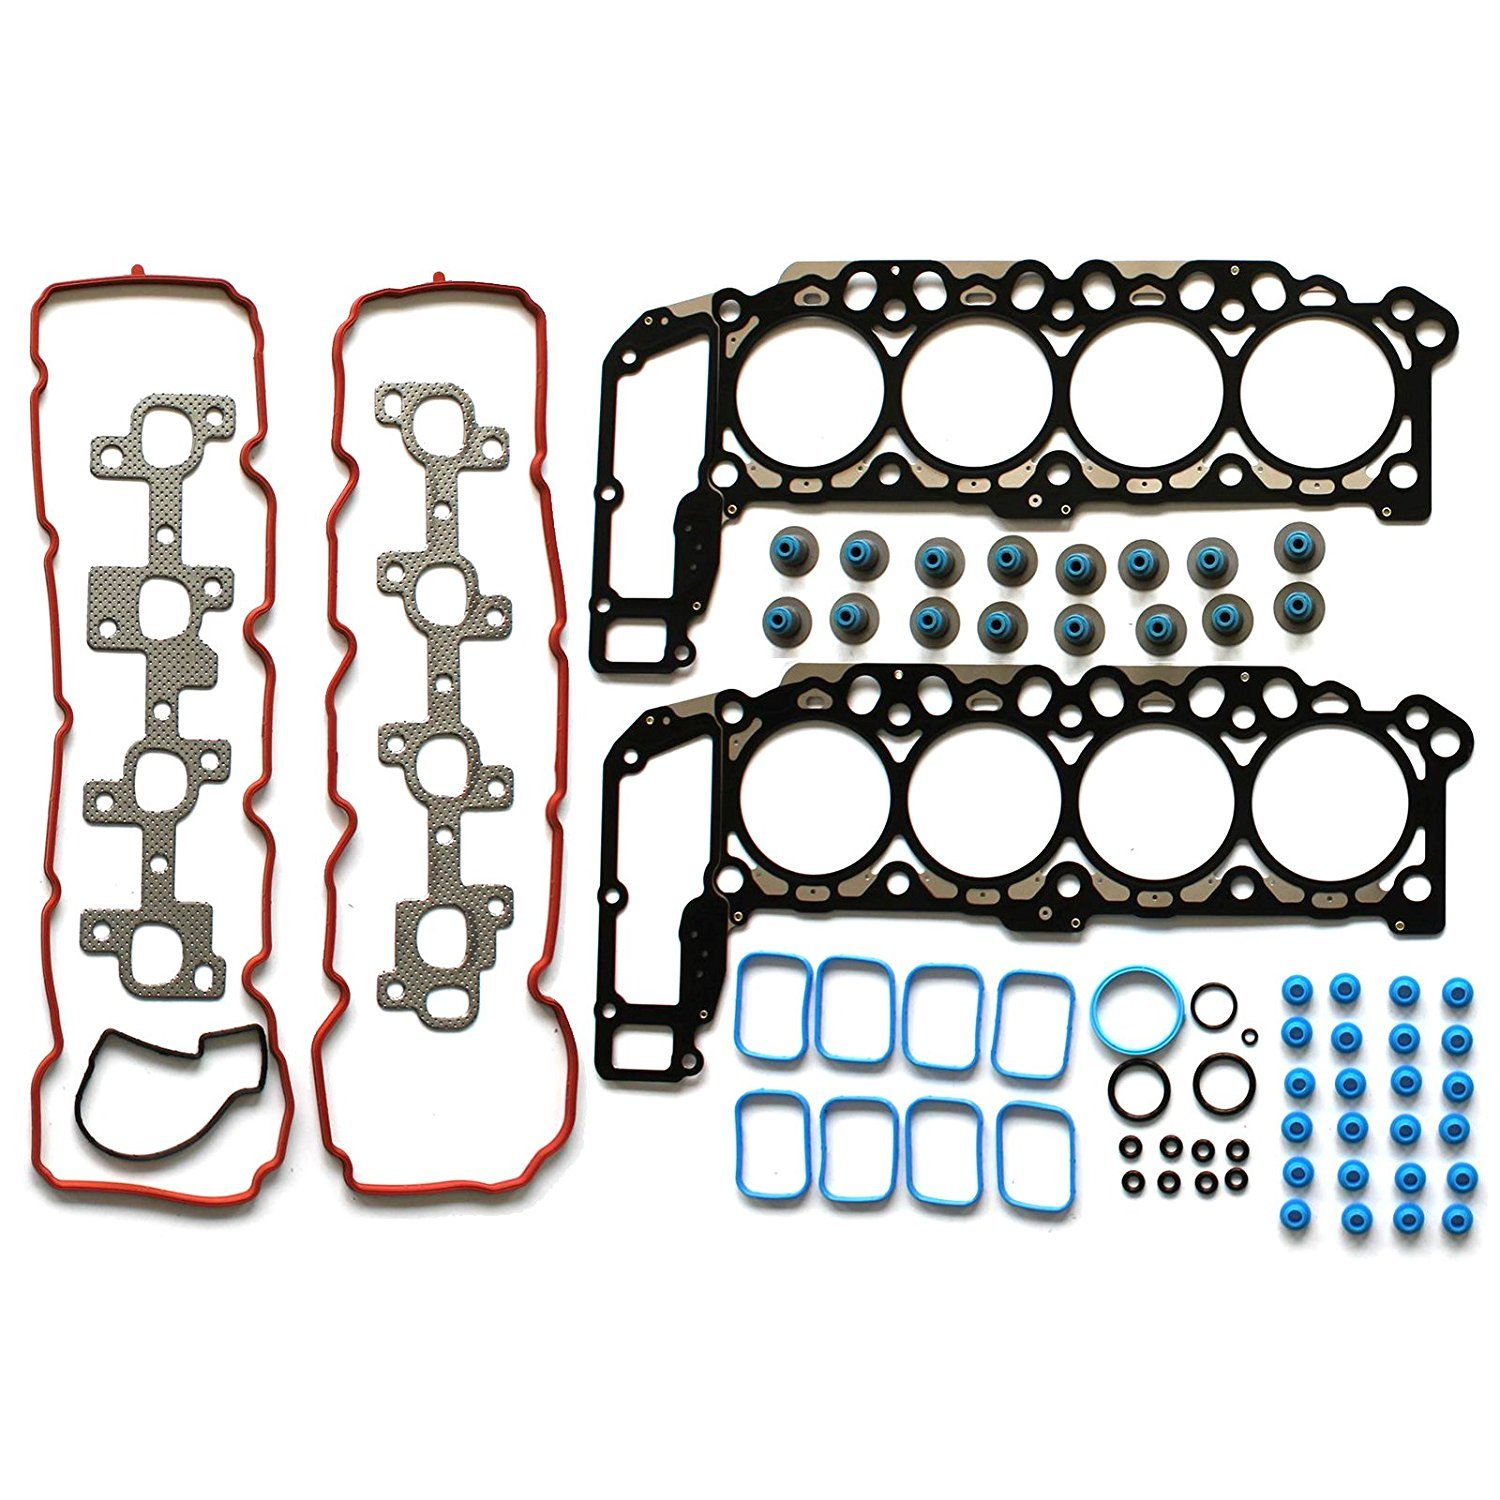 SCITOO Head Gasket Set Replacement for Chrysler Aspen Dodge Dakota Durango Ram 1500 Jeep Commander Grand Cherokee Mitsubishi Raider 04-07 Engine Head Gaskets Kit Sets 058086-5206-1627101